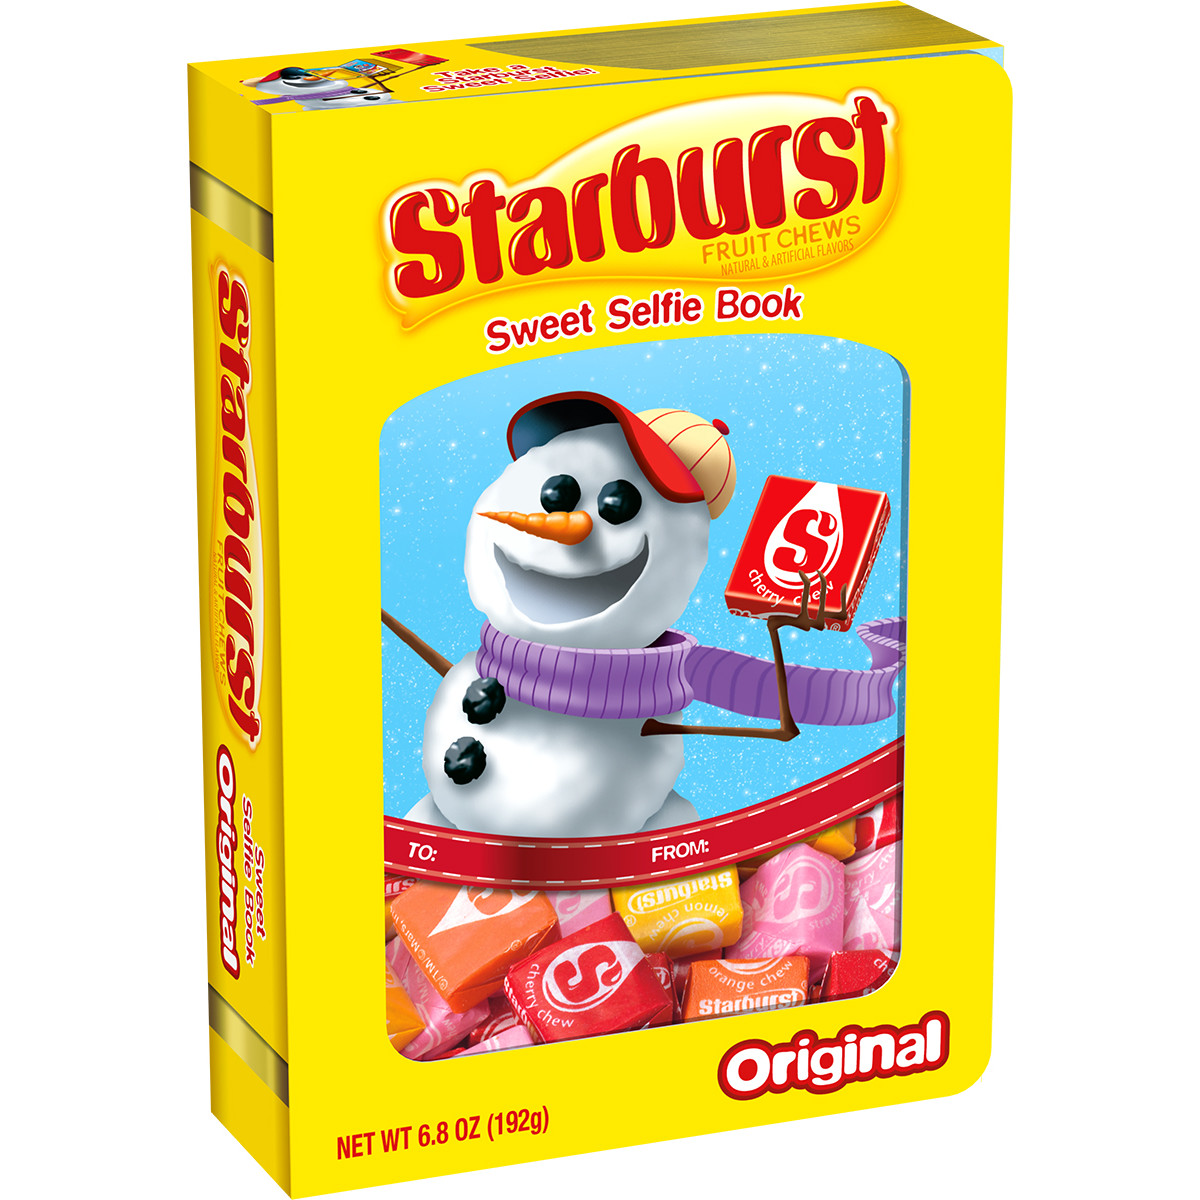 Starburst Original Fruit Chews Sweet Selfie Candy Book, 6.8 ounce